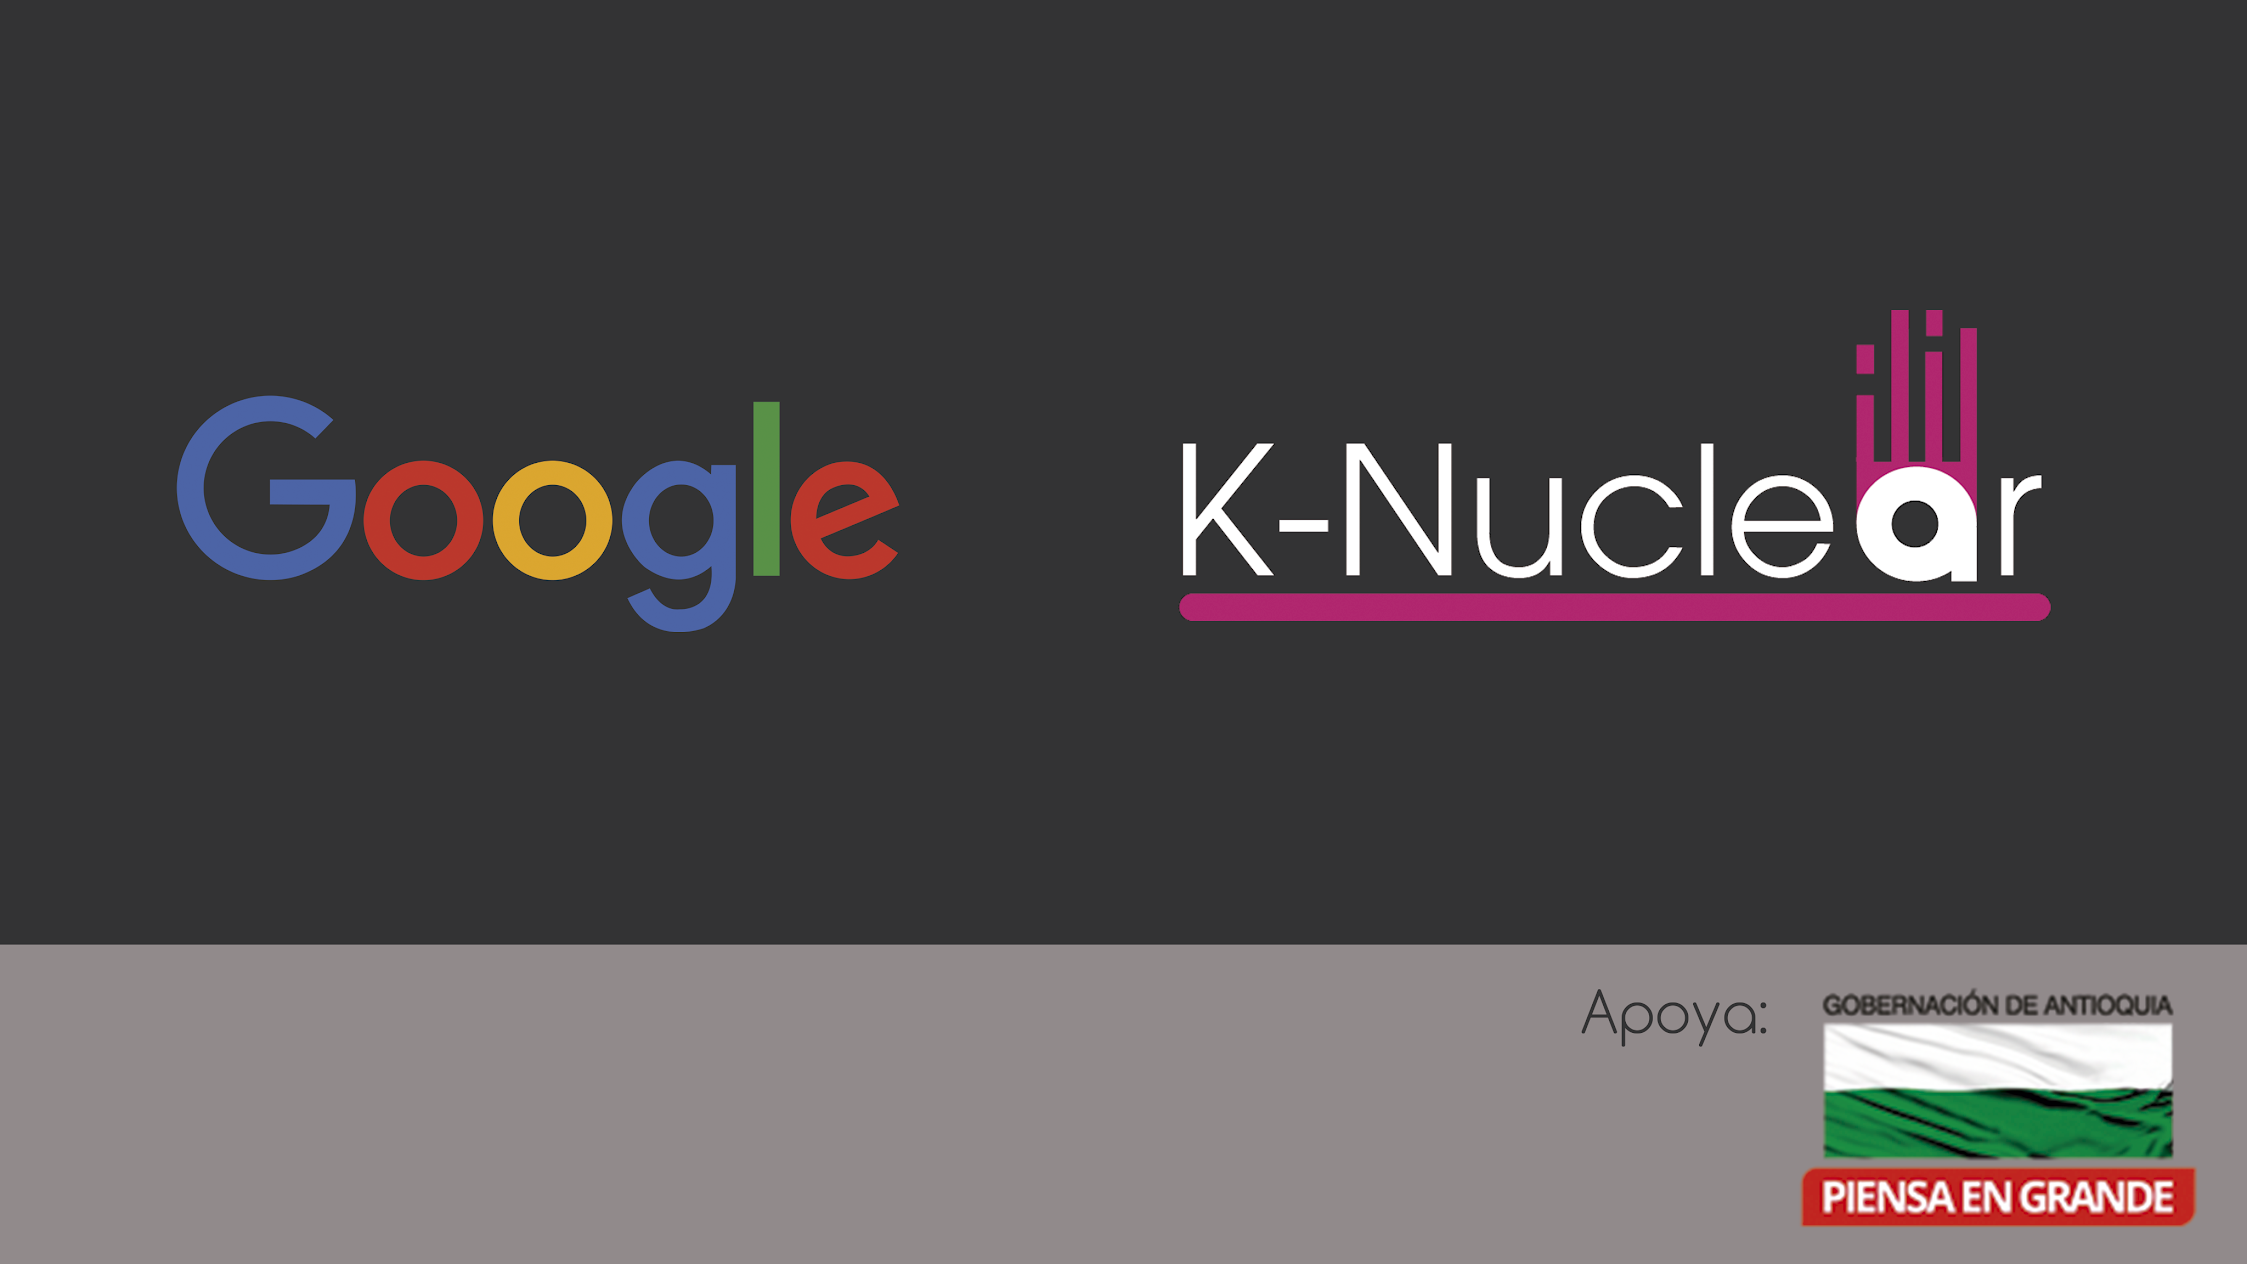 K-Nuclear Colombia